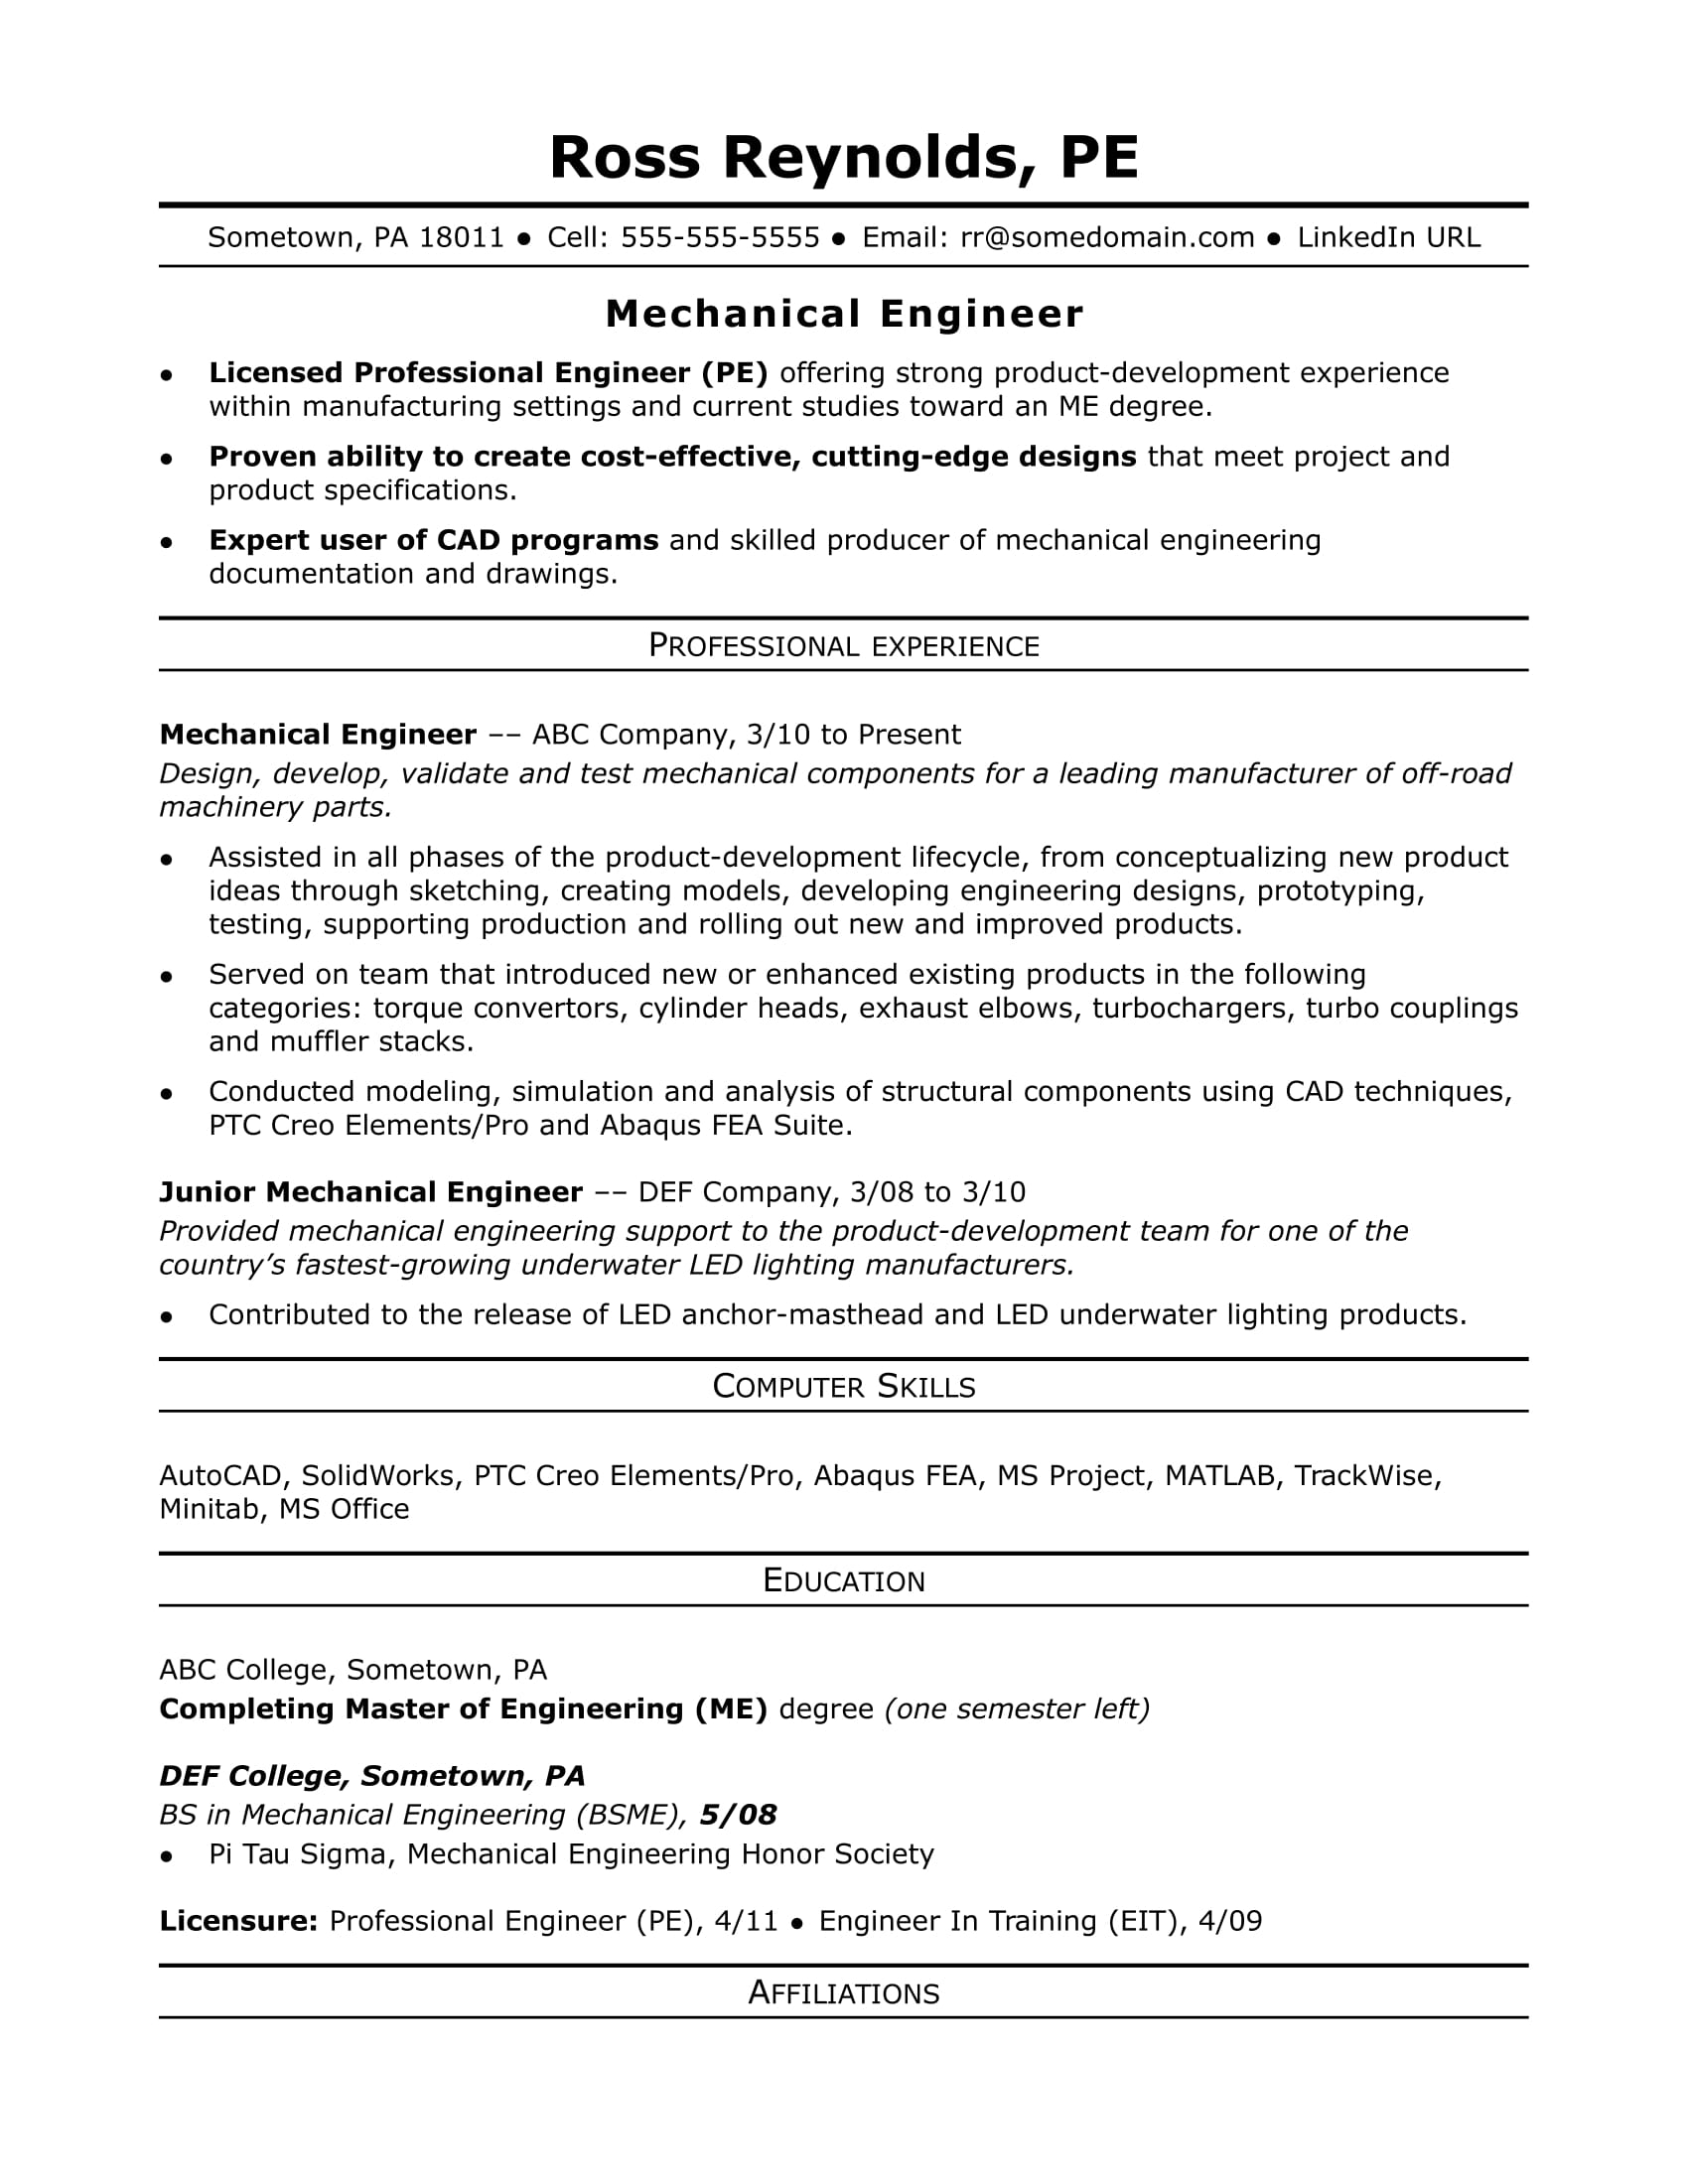 Sample Resume For A Midlevel Mechanical Engineer Monster Com